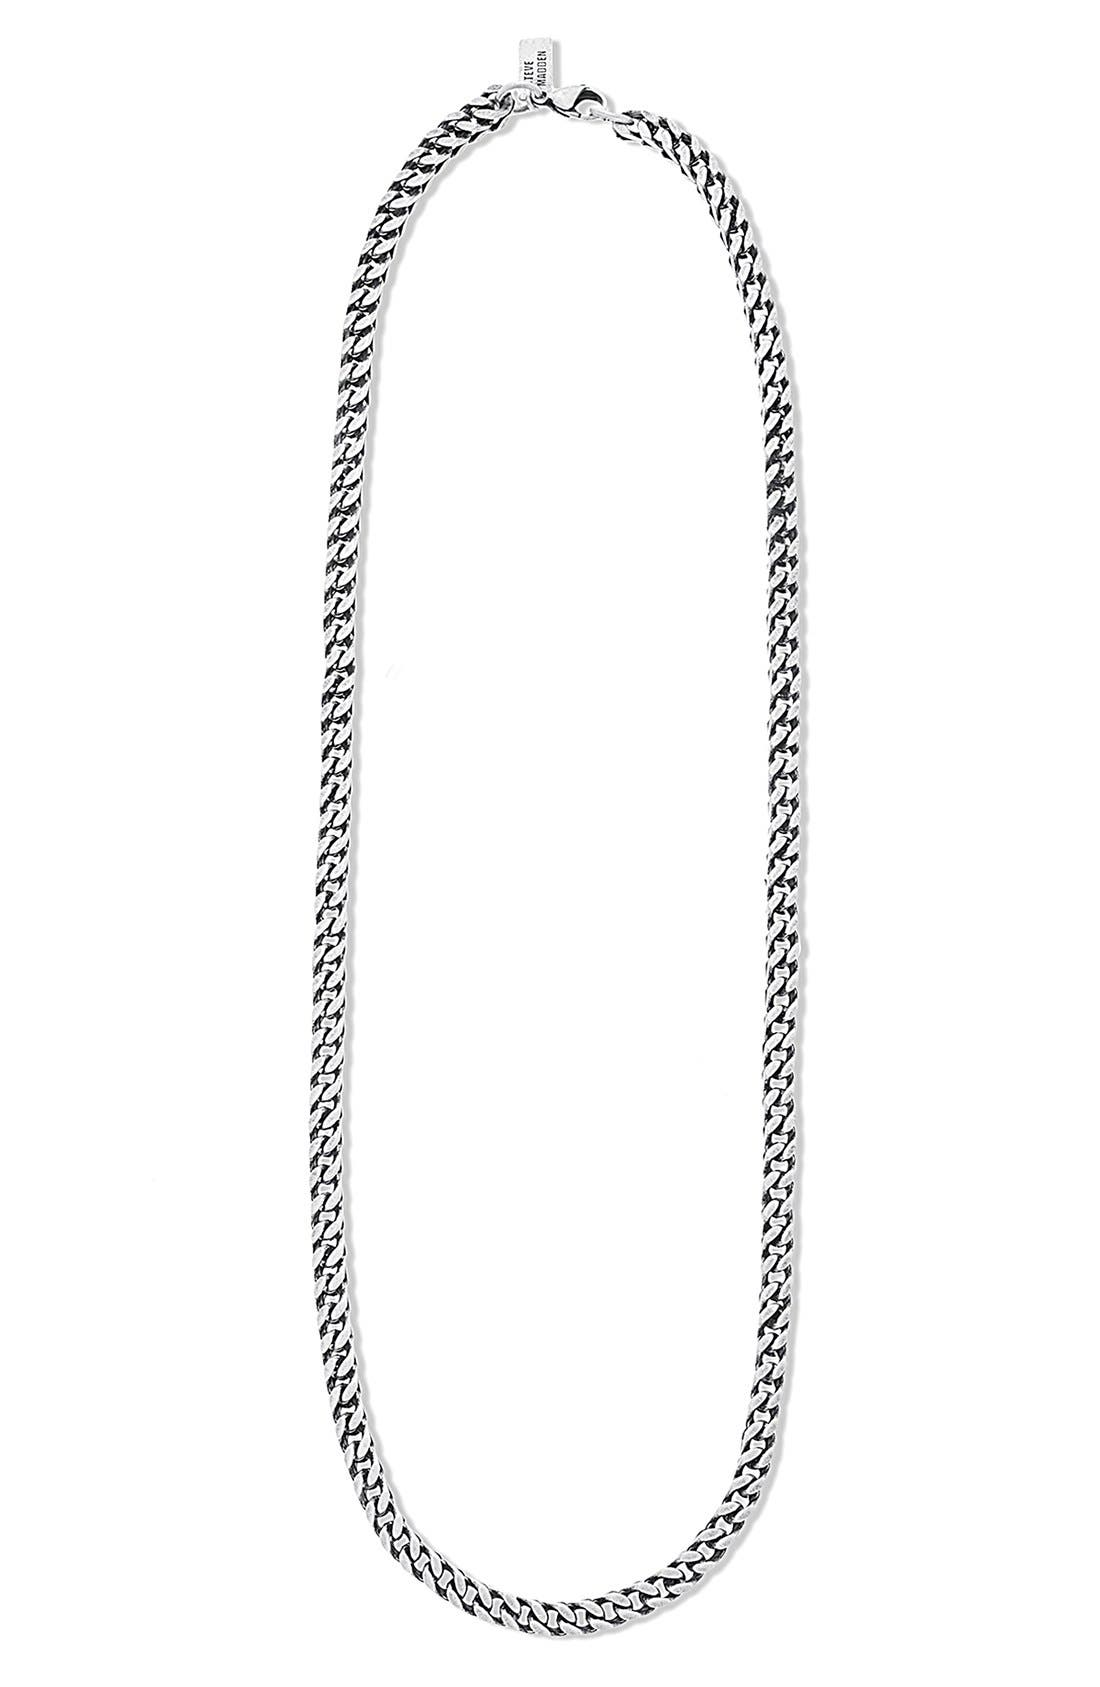 Main Image - Steve Madden 'Classic' Franco Chain Necklace